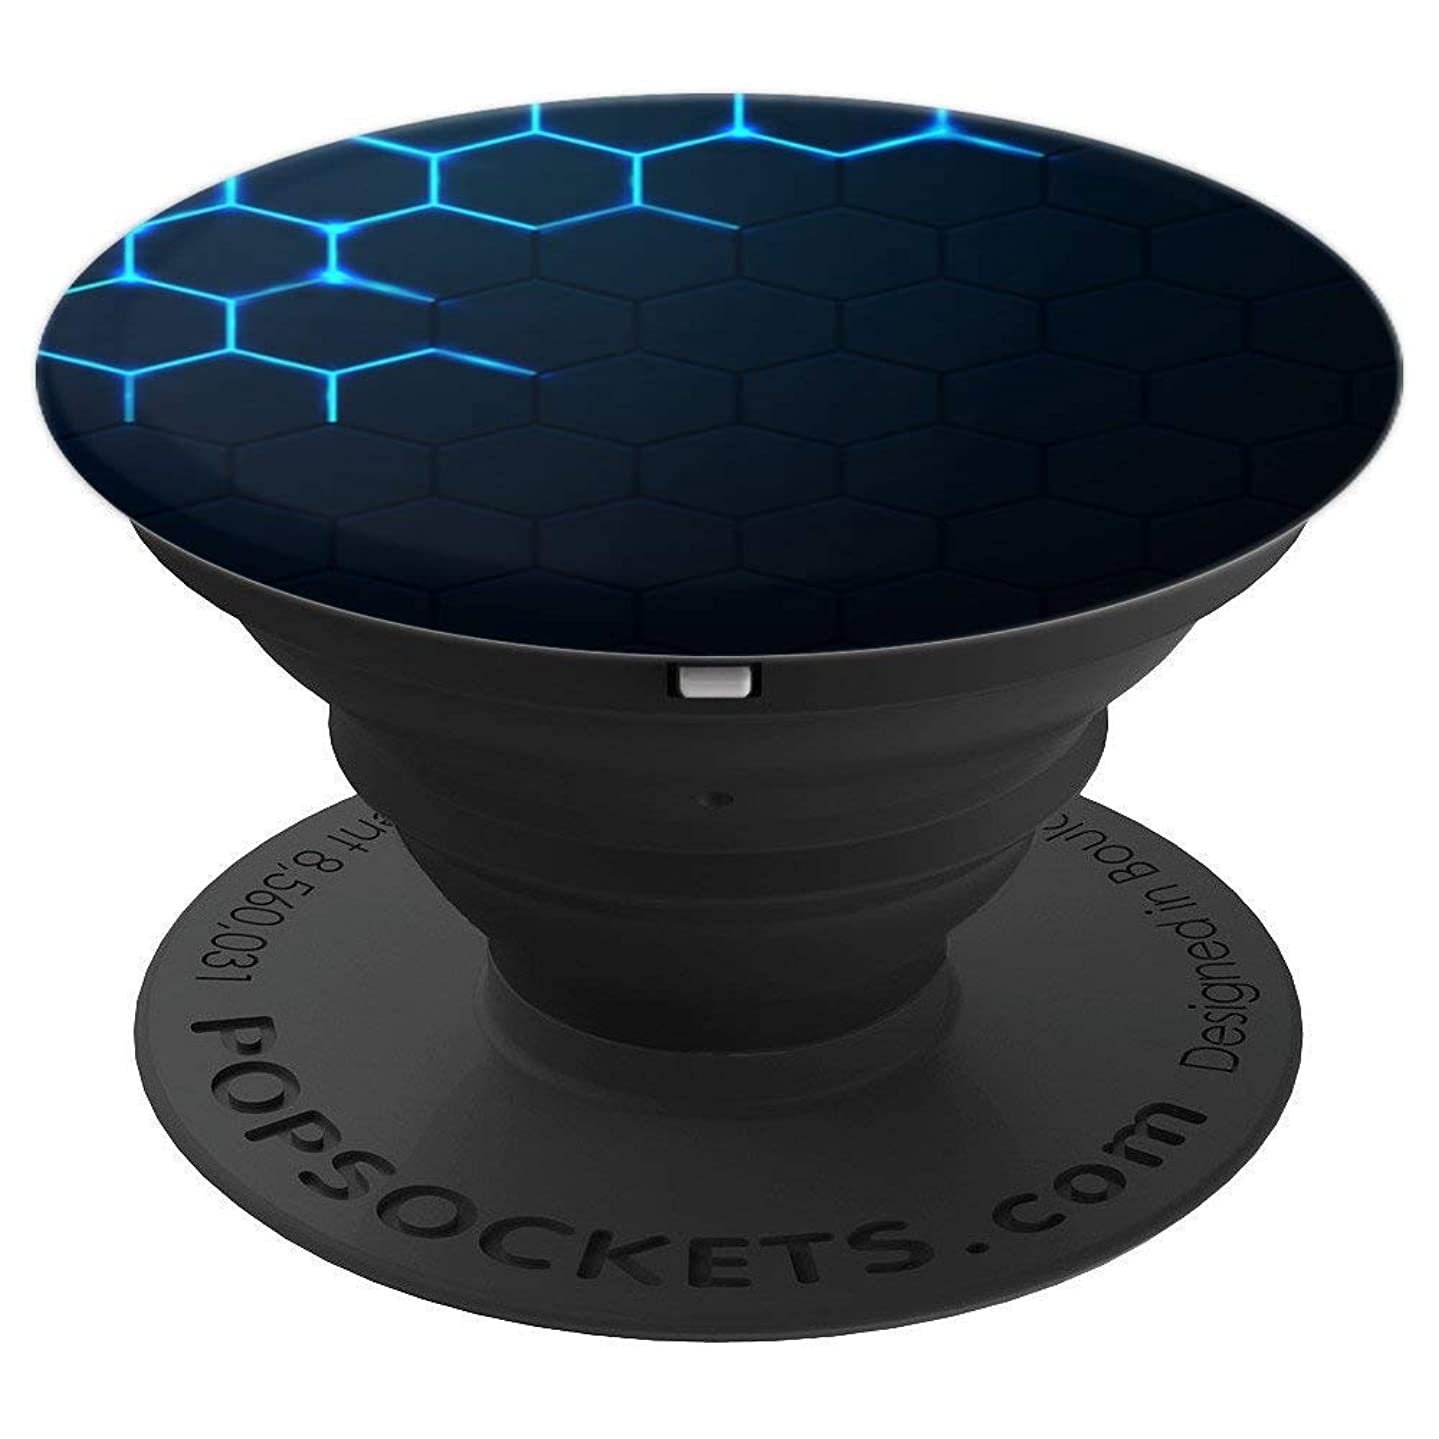 Black Abstract Background Theme Design For Men - PopSockets Grip and Stand for Phones and Tablets